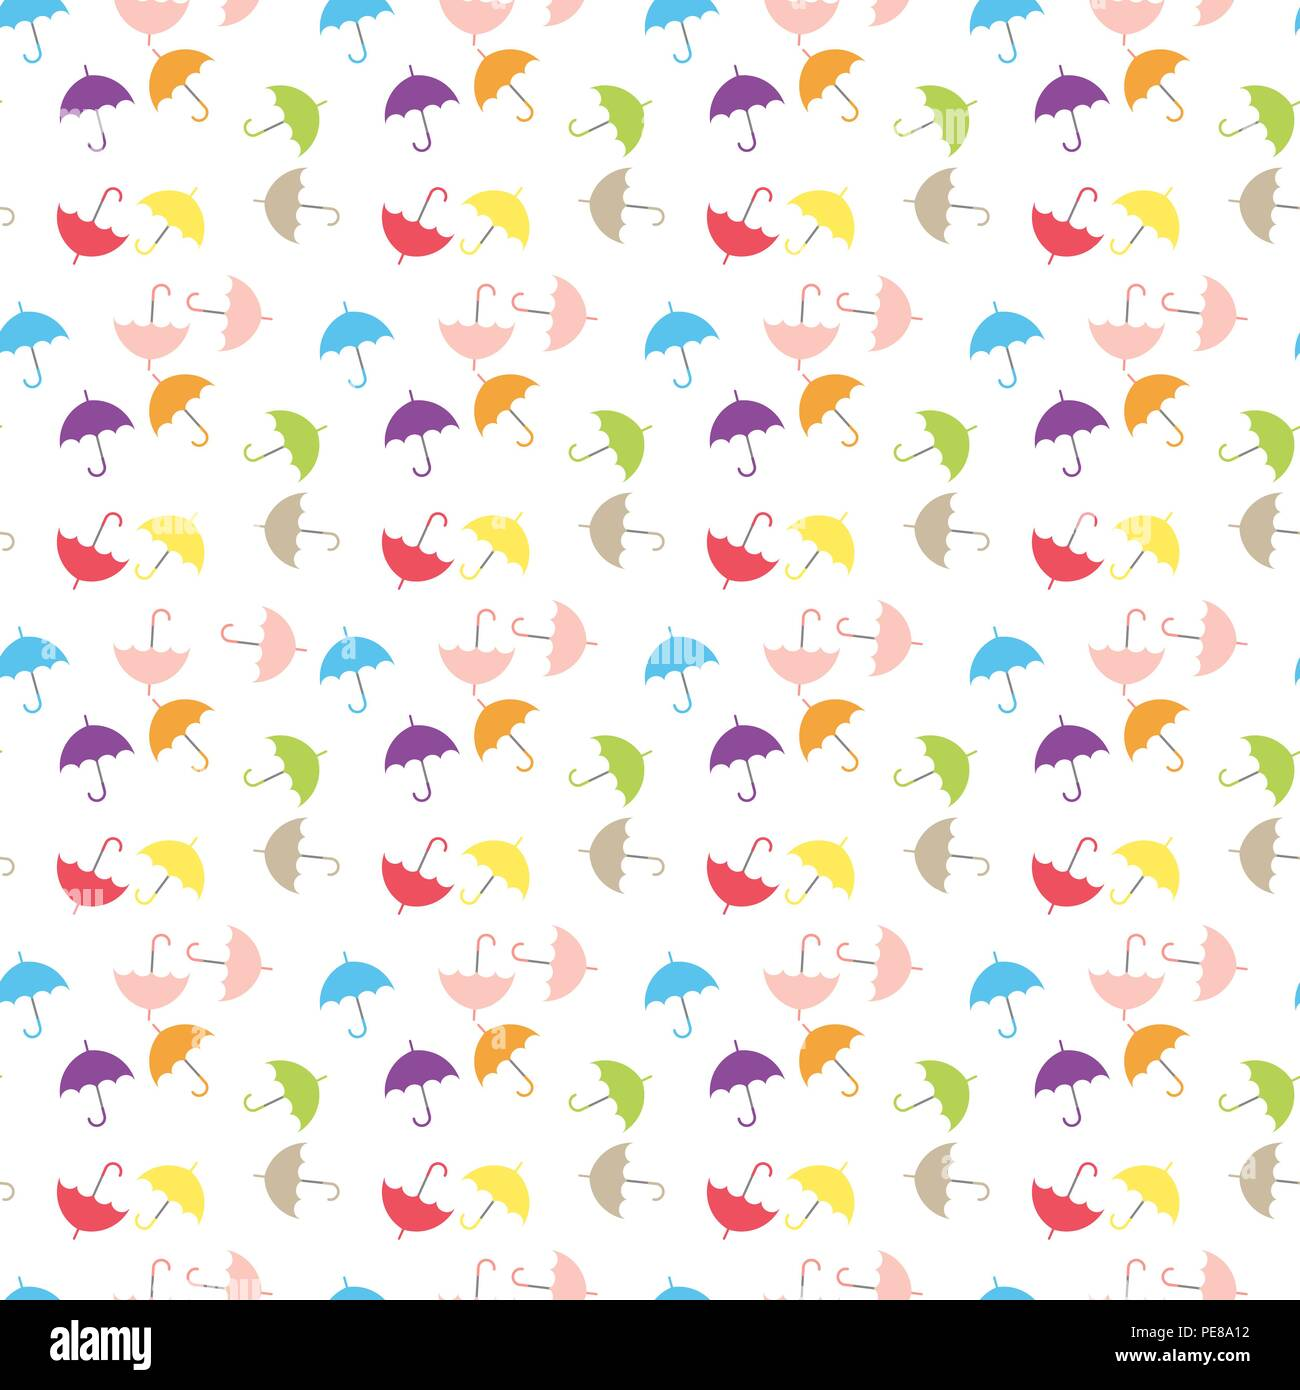 Watercolor Umbrellas Seamless Pattern Colorful Vector Illustration Suitable For Wallpaper Web Page Background Kids Textile Eps 10